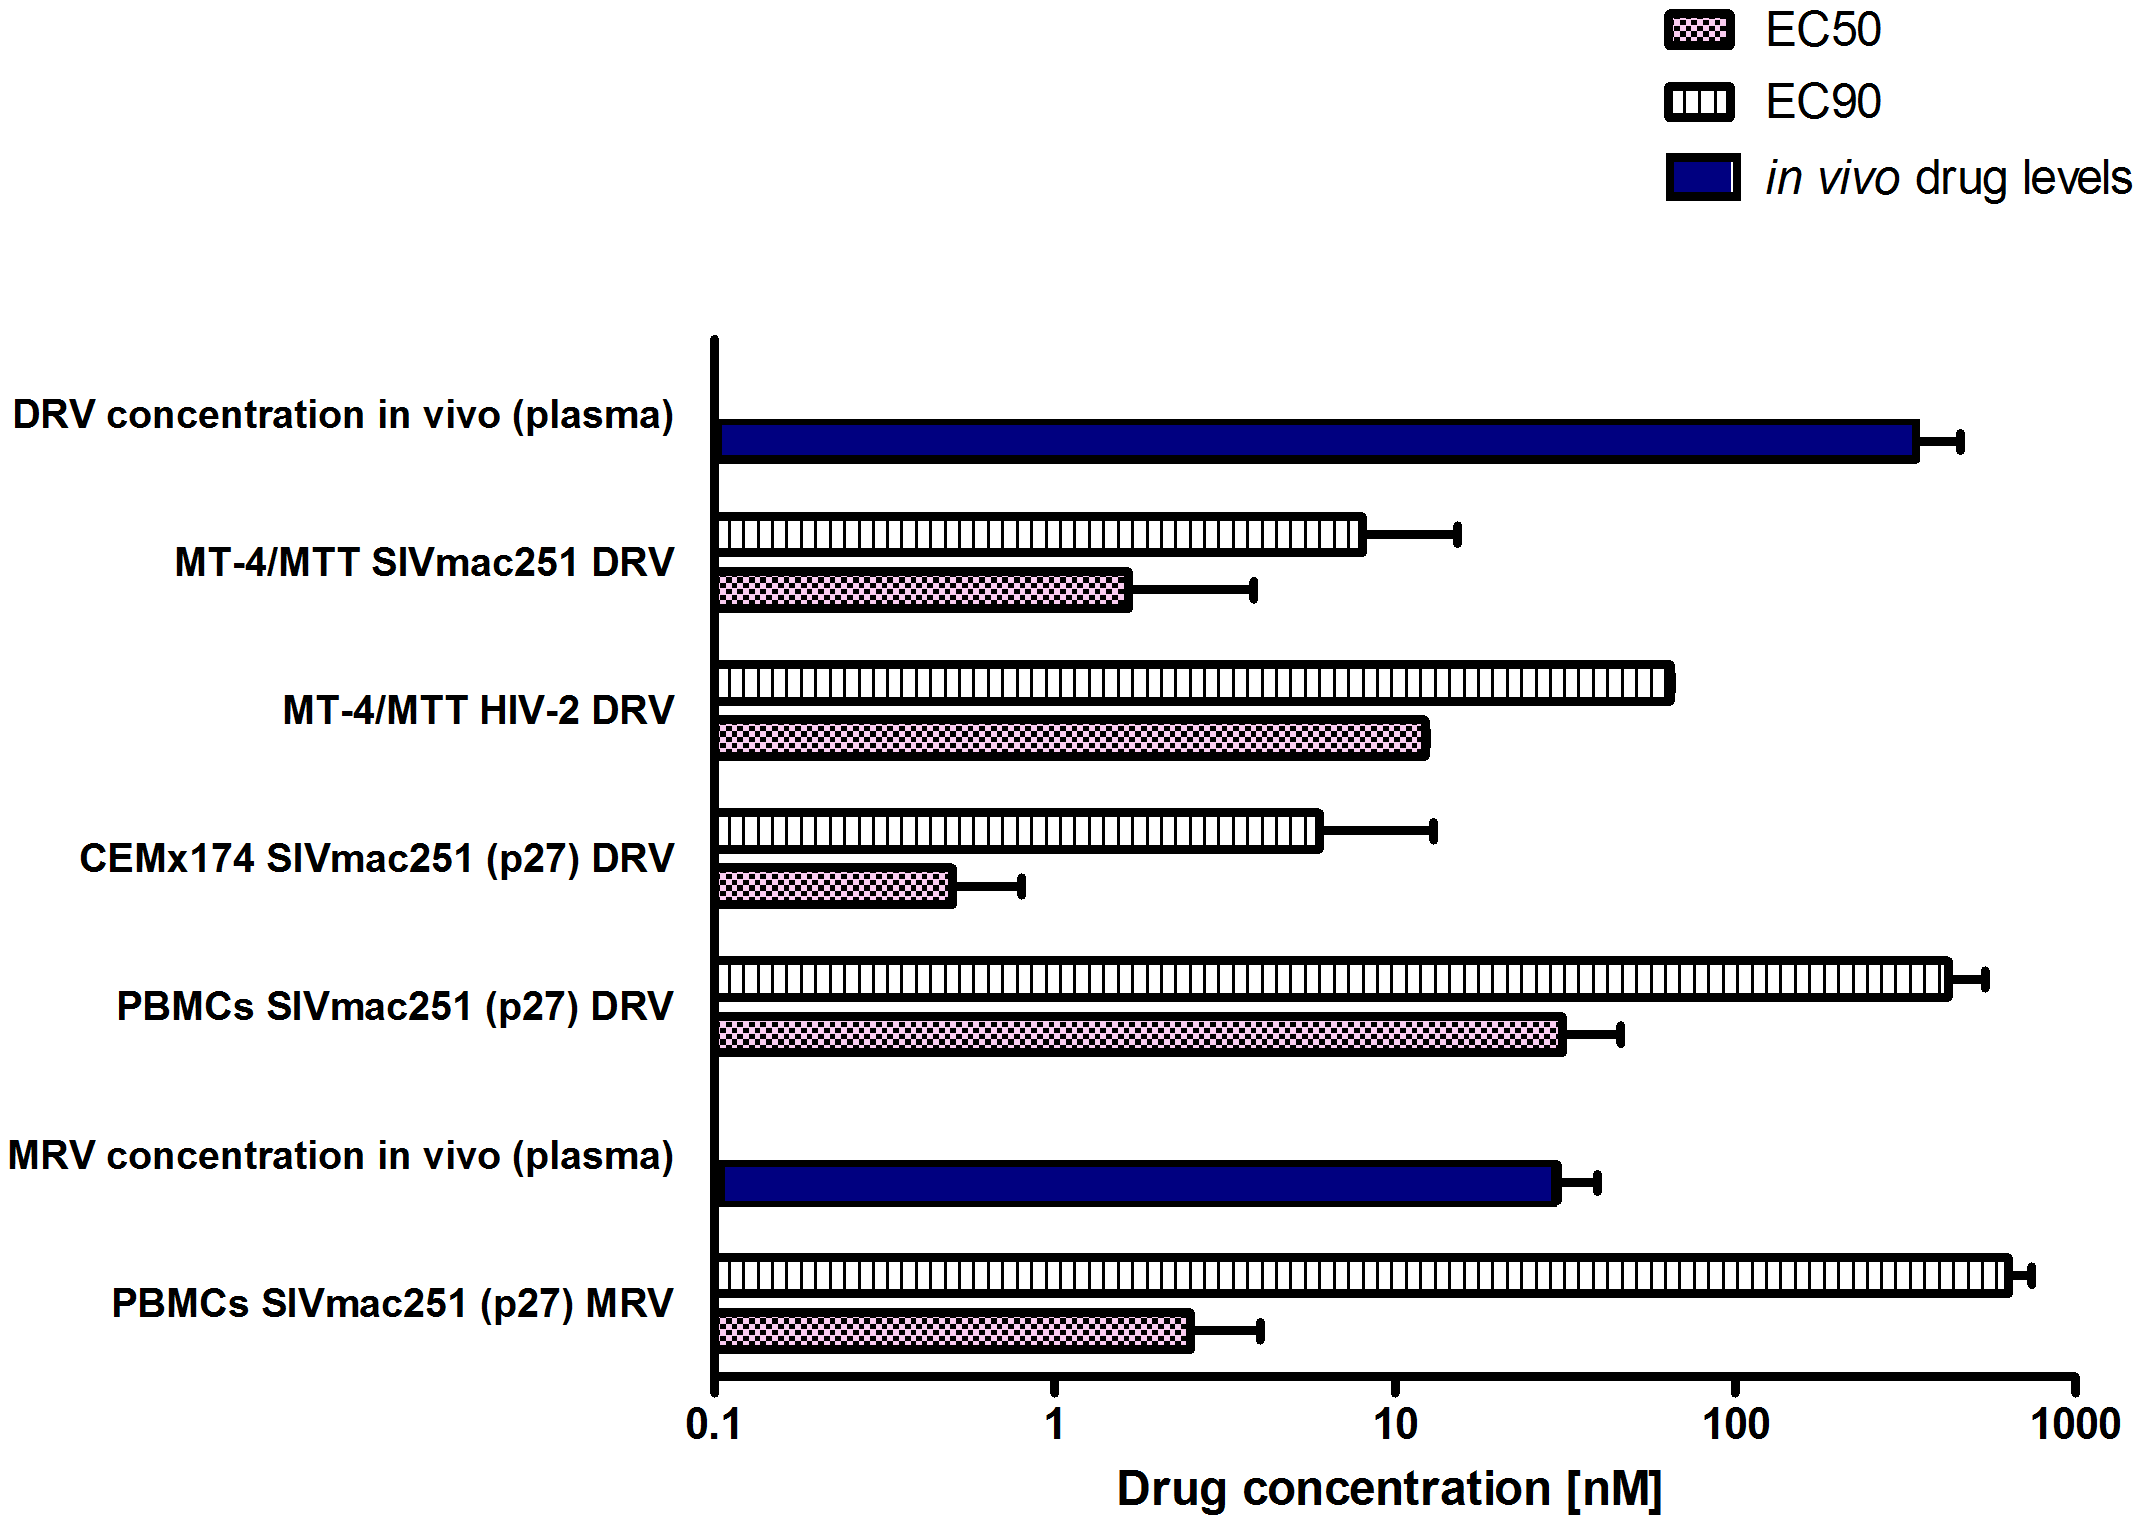 SIVmac251 is susceptible to DRV and MRV.